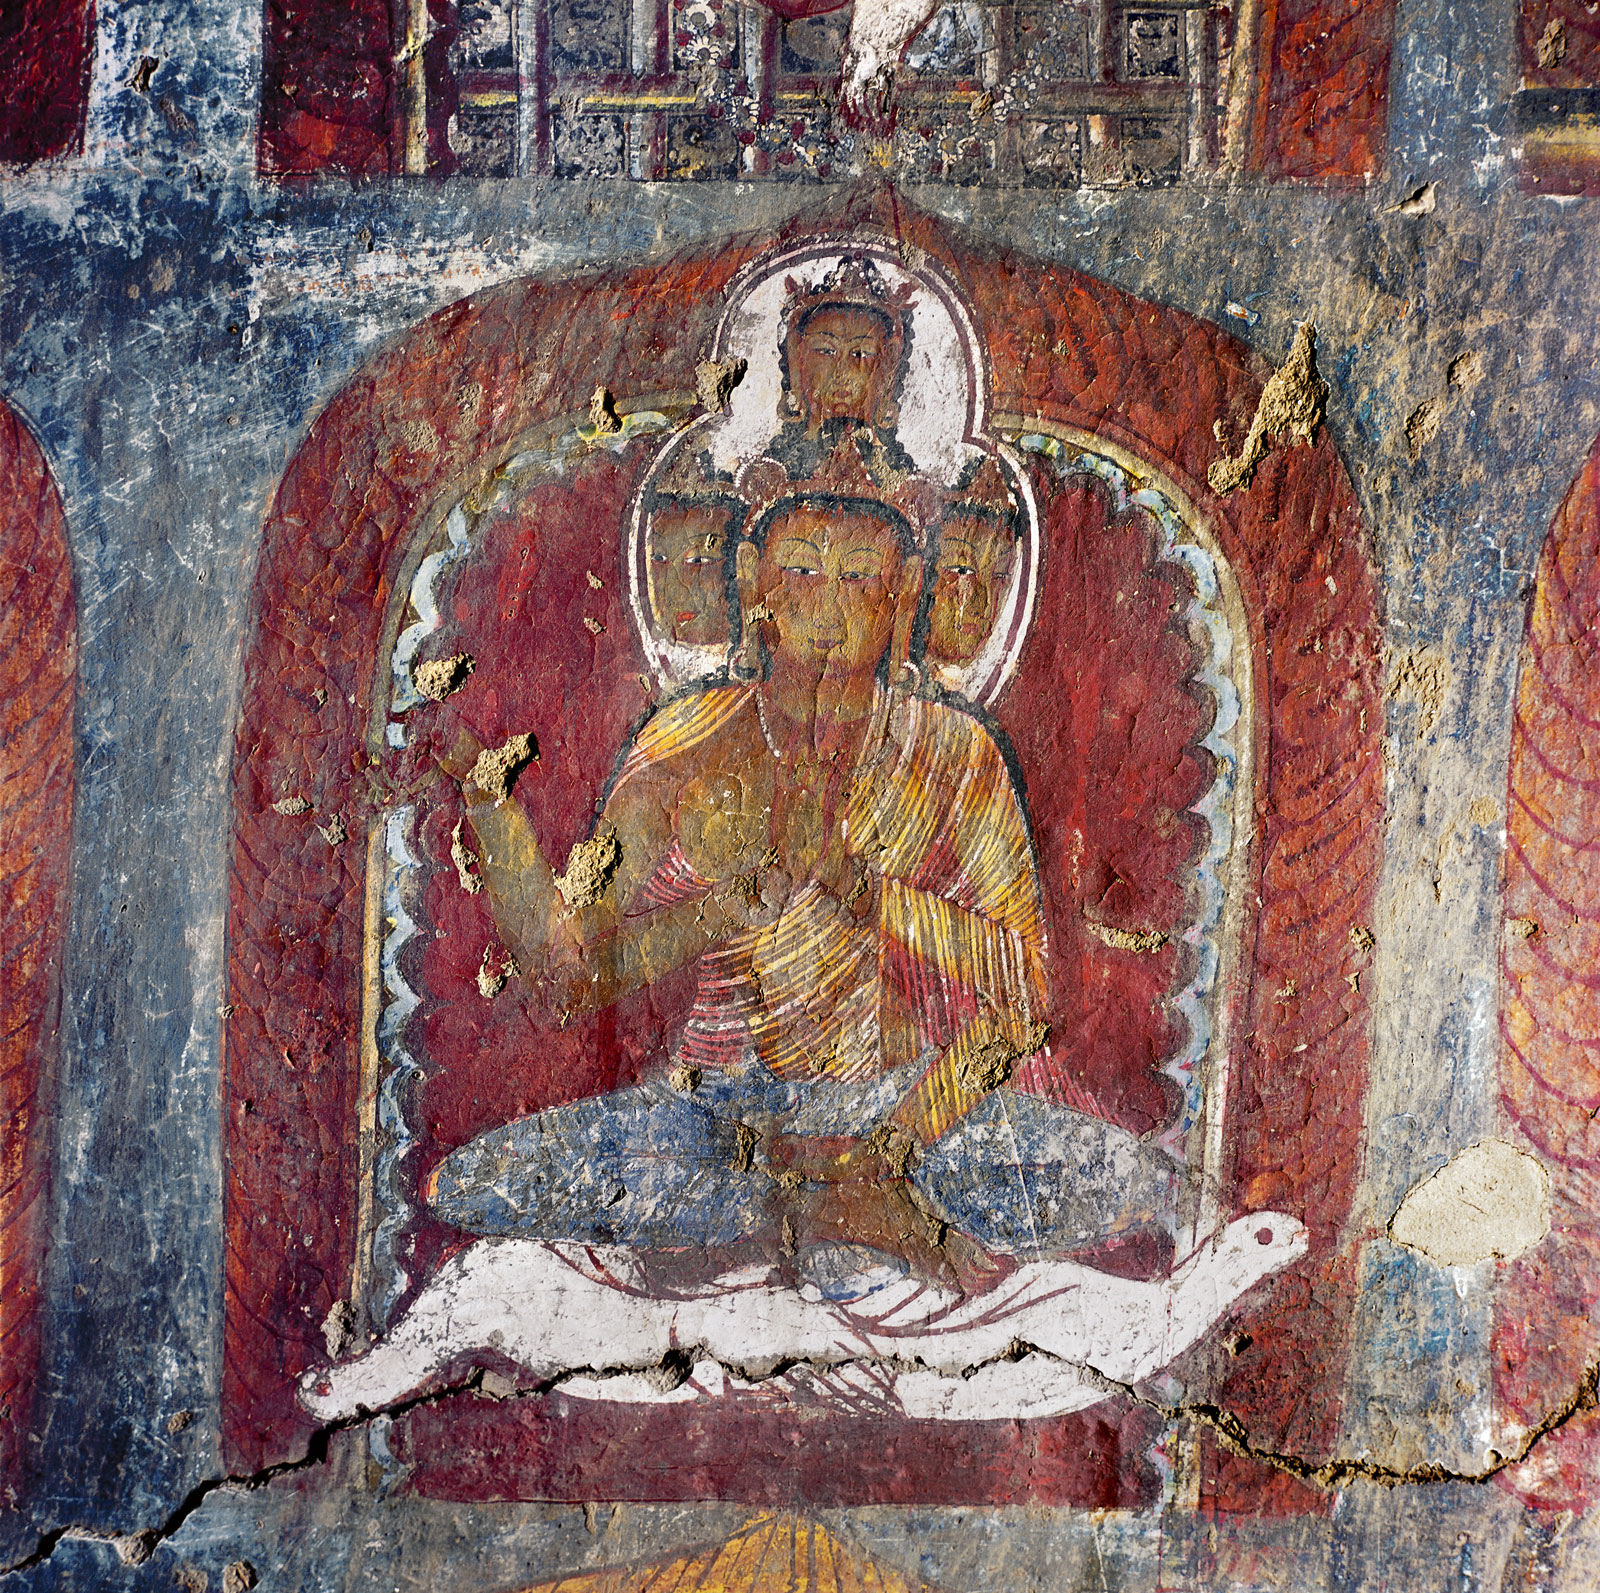 Detail of a wall painting showing Brahma, the God of Creation, with four heads and four arms, riding two geese, Nako, late eleventh to early twelfth century